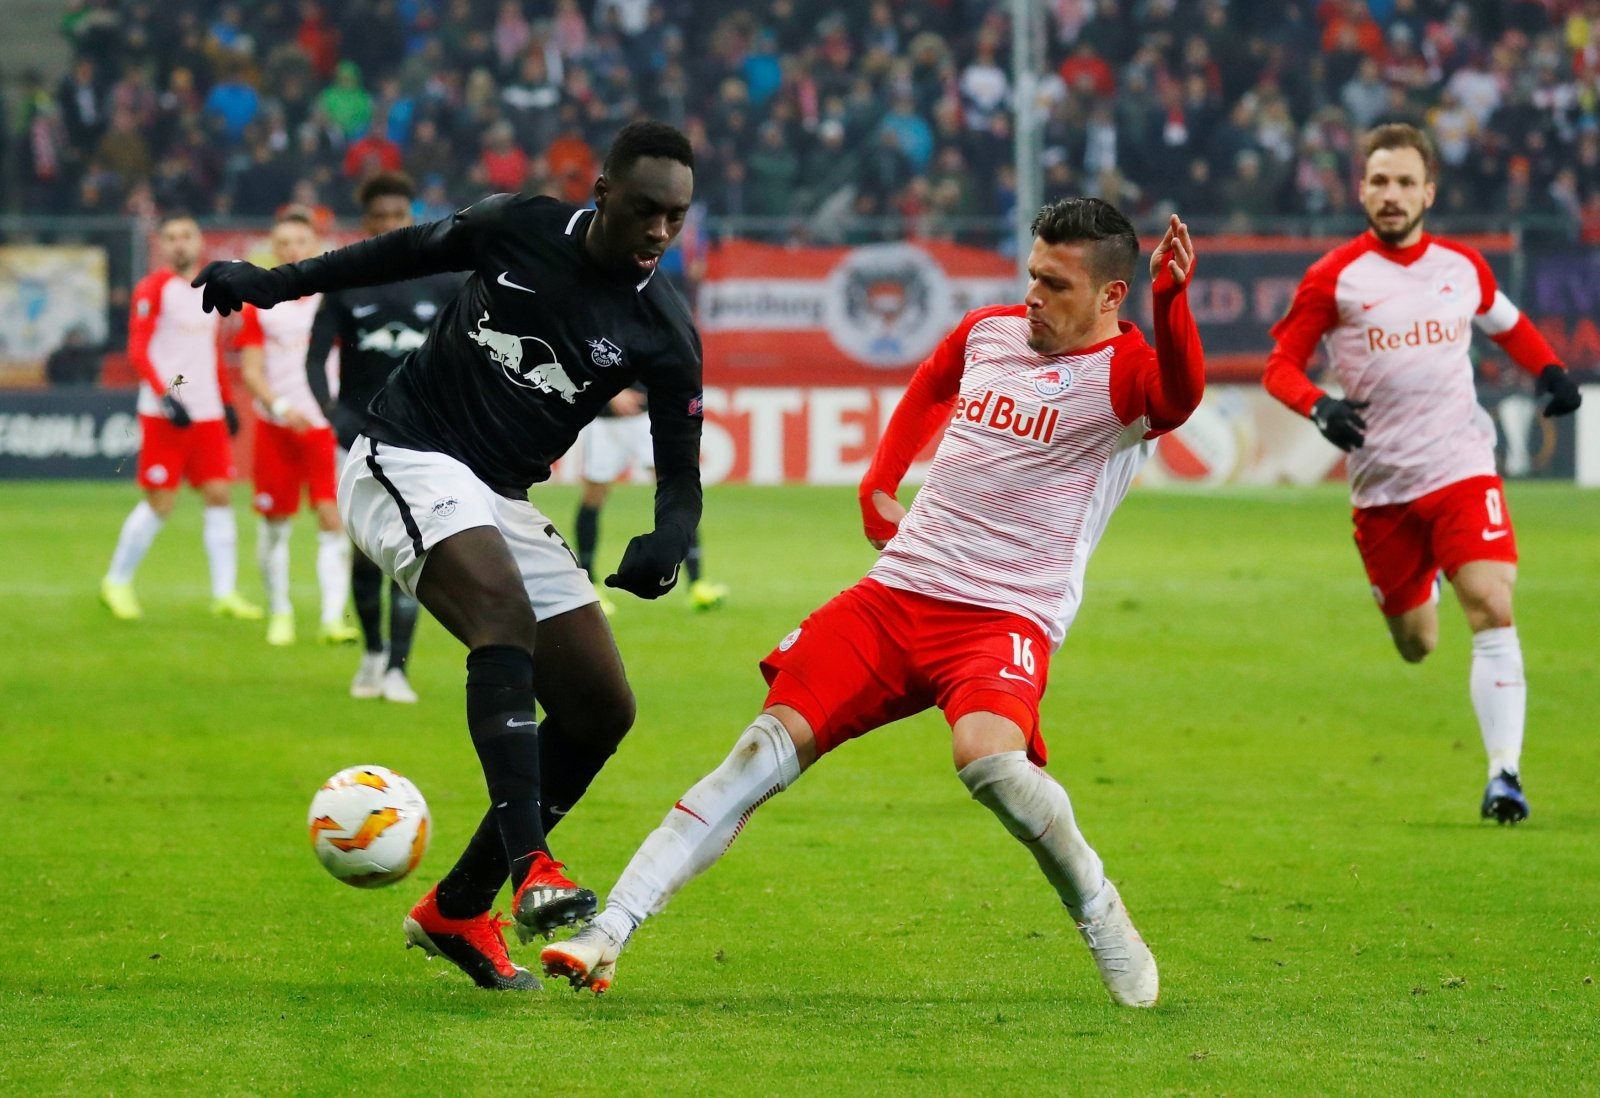 Jean-Kevin Augustin as back-up to Kane would be brilliant for Spurs